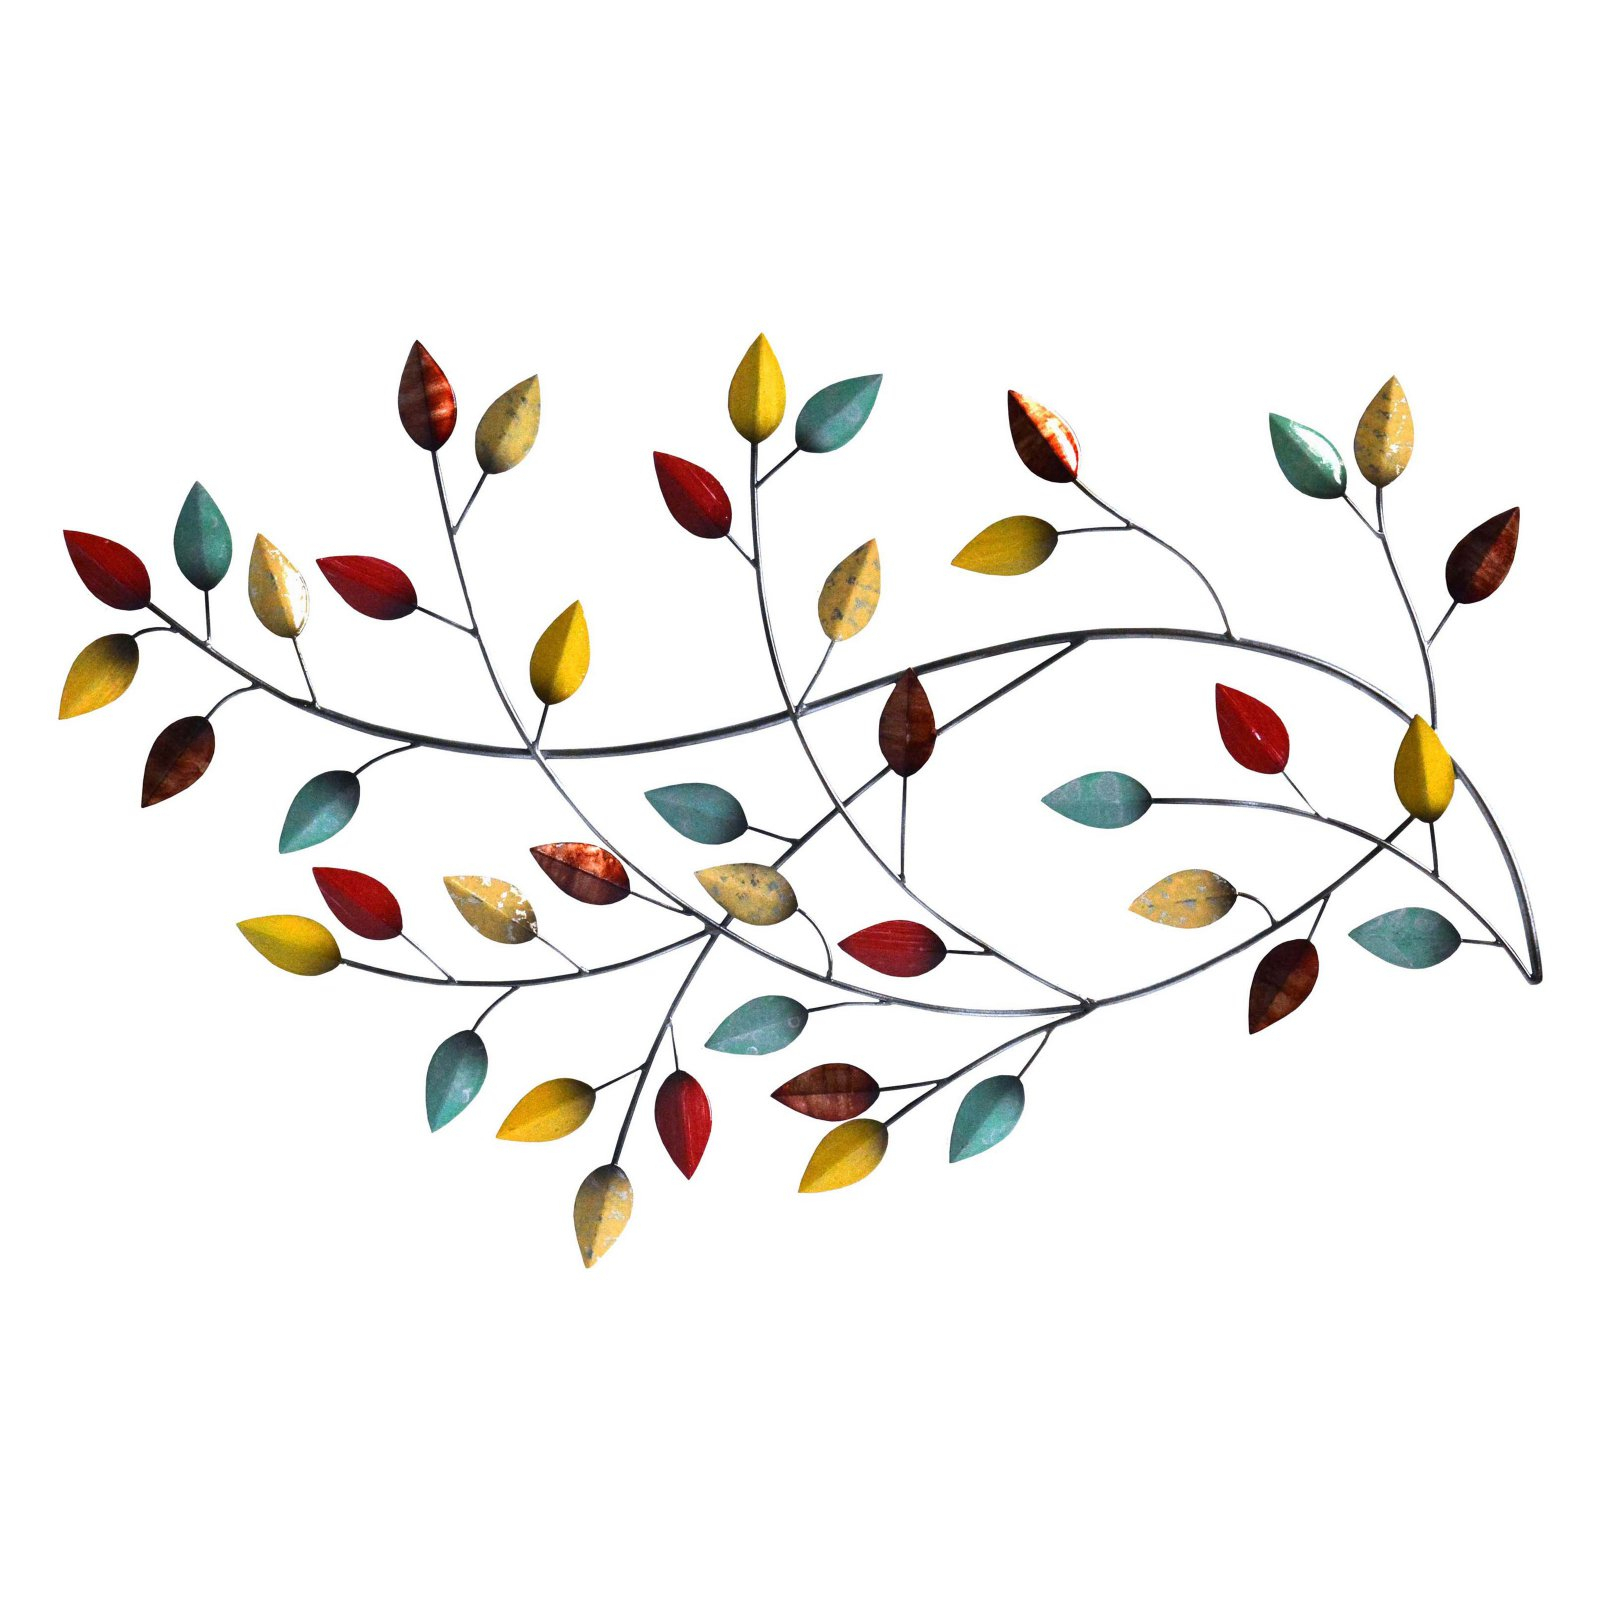 Best And Newest Stratton Home Decor Autumn Blowing Leaves Wall Decor – Walmart Within Blowing Leaves Wall Decor (View 13 of 20)